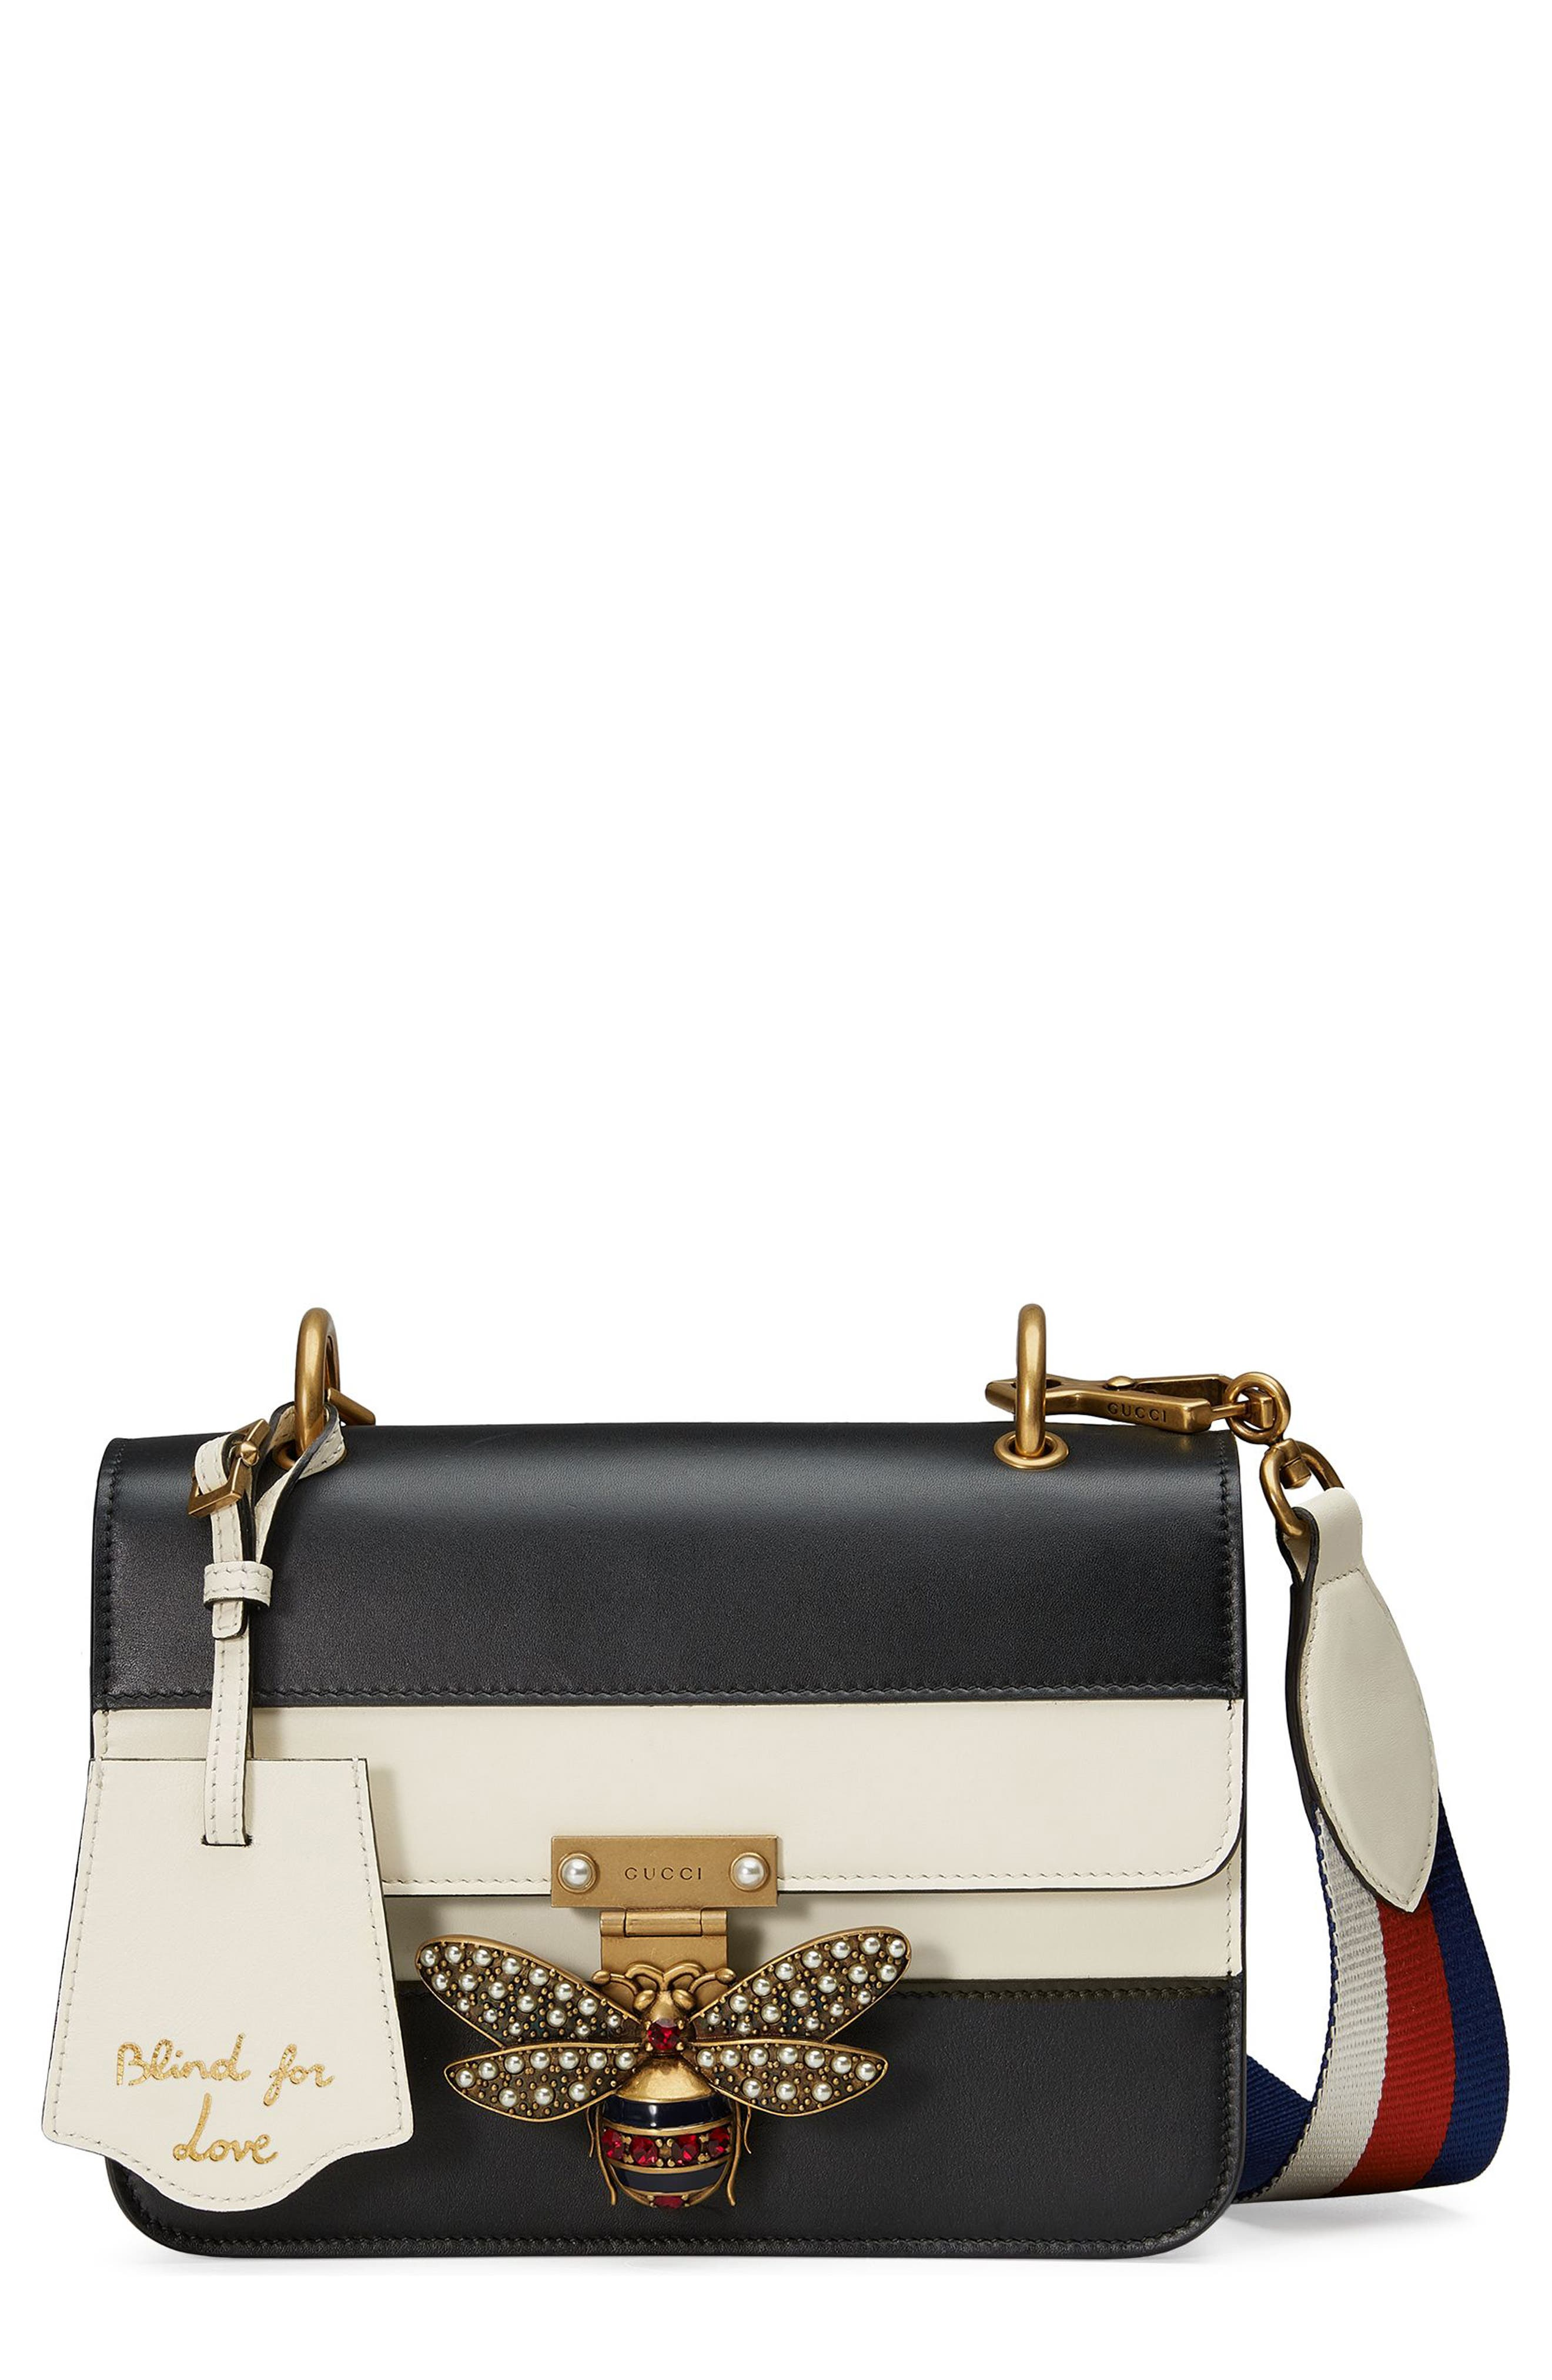 Queen Margaret Stripe Leather Shoulder Bag,                         Main,                         color,